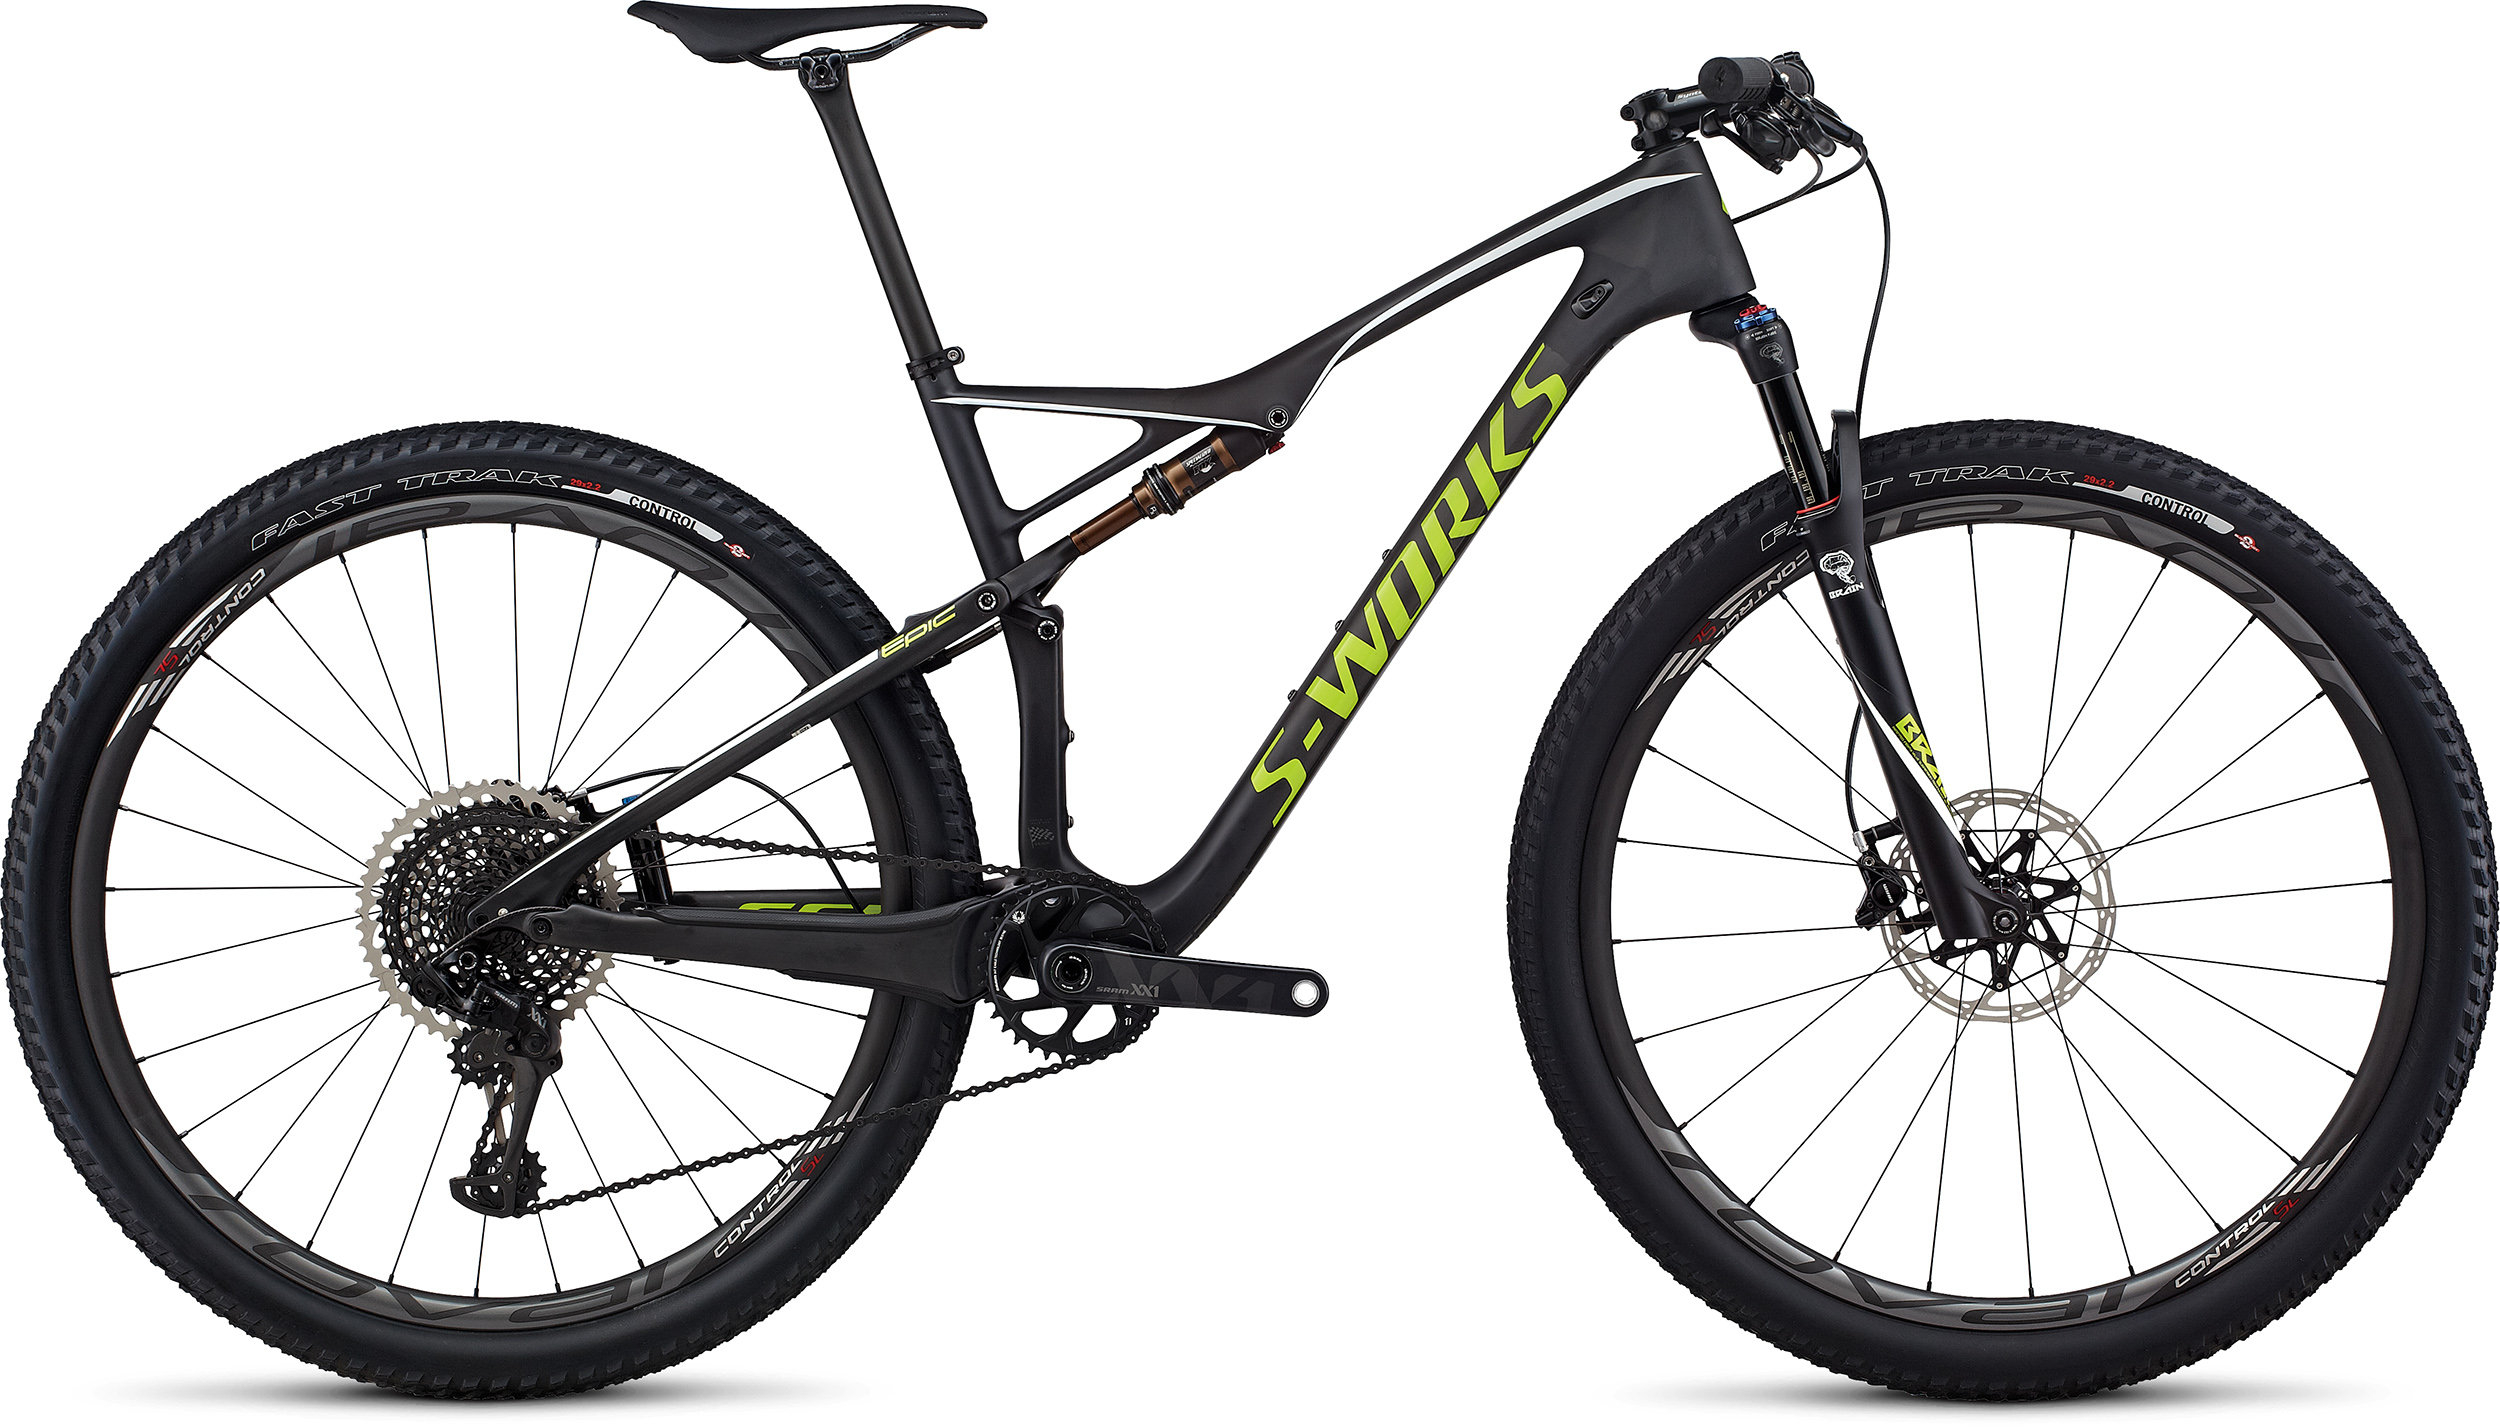 d3807d11896 2017 Specialized S-Works Epic FSR World Cup - Specialized Concept Store